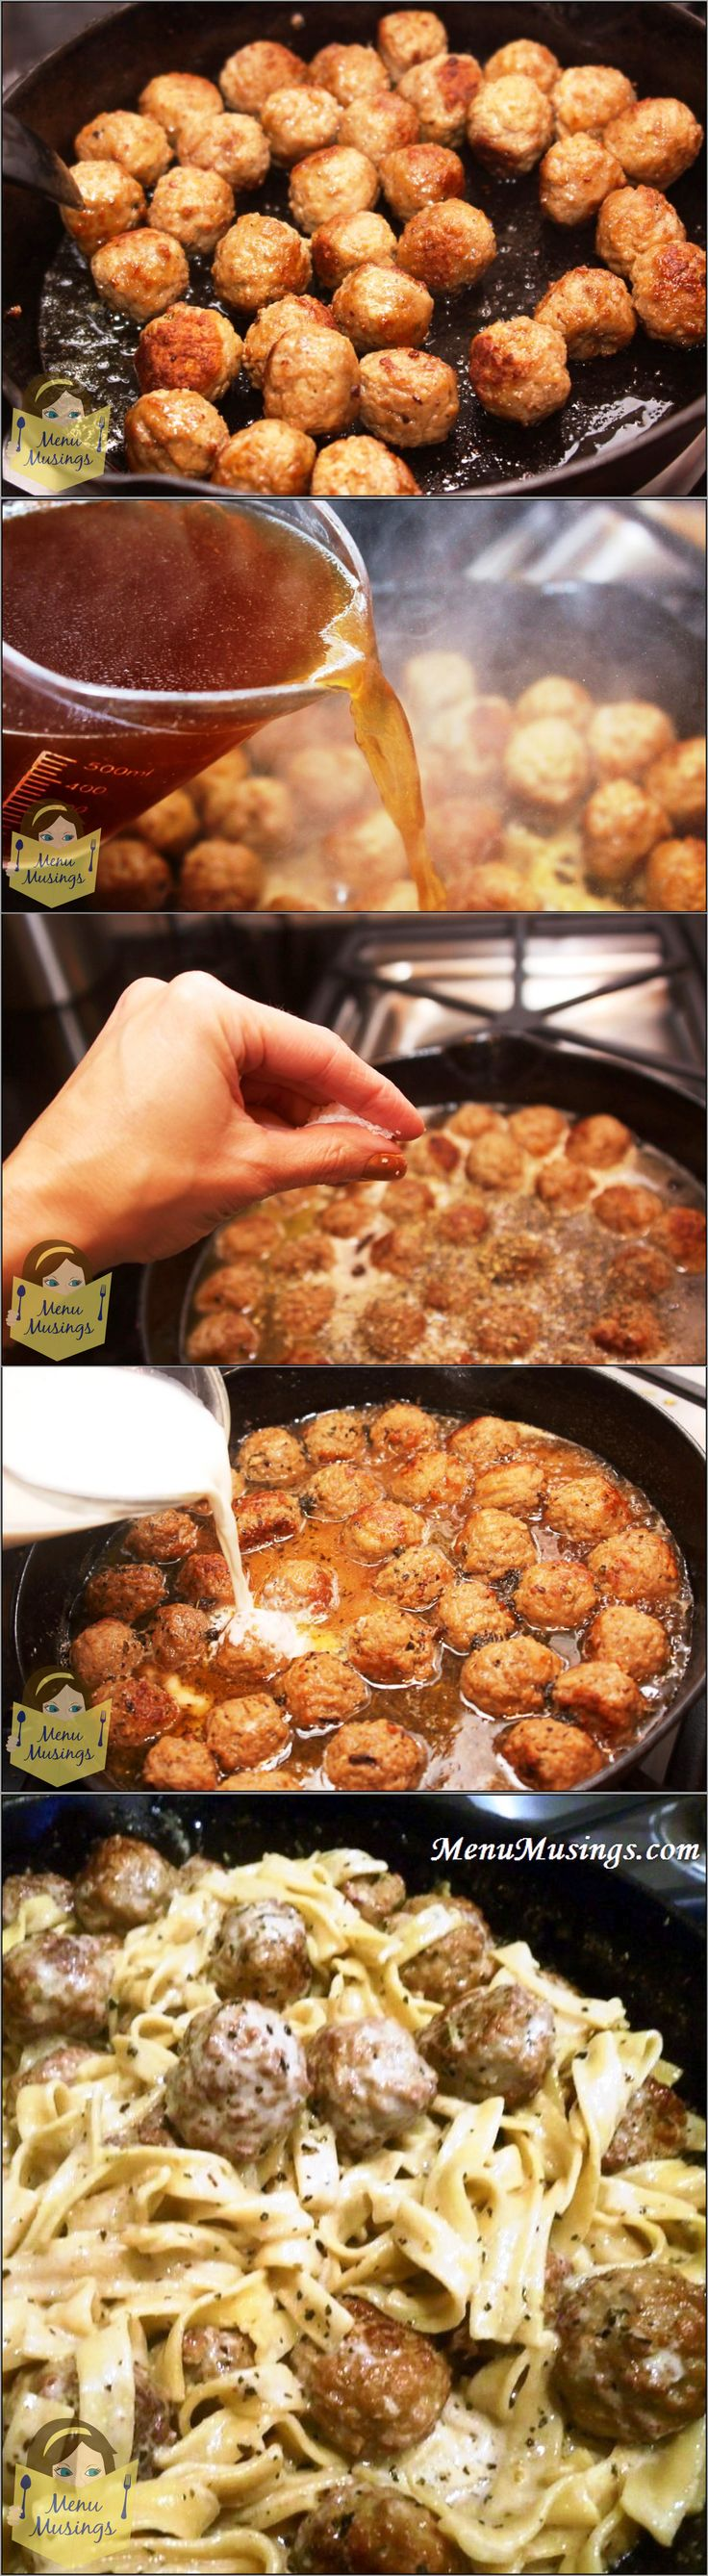 Meatballs Stroganoff - It's one of those things you throw together after work on a busy day because it works and its delicious and your kids love it, and its super fast.  Step-by-step photos, and already over 600K views!